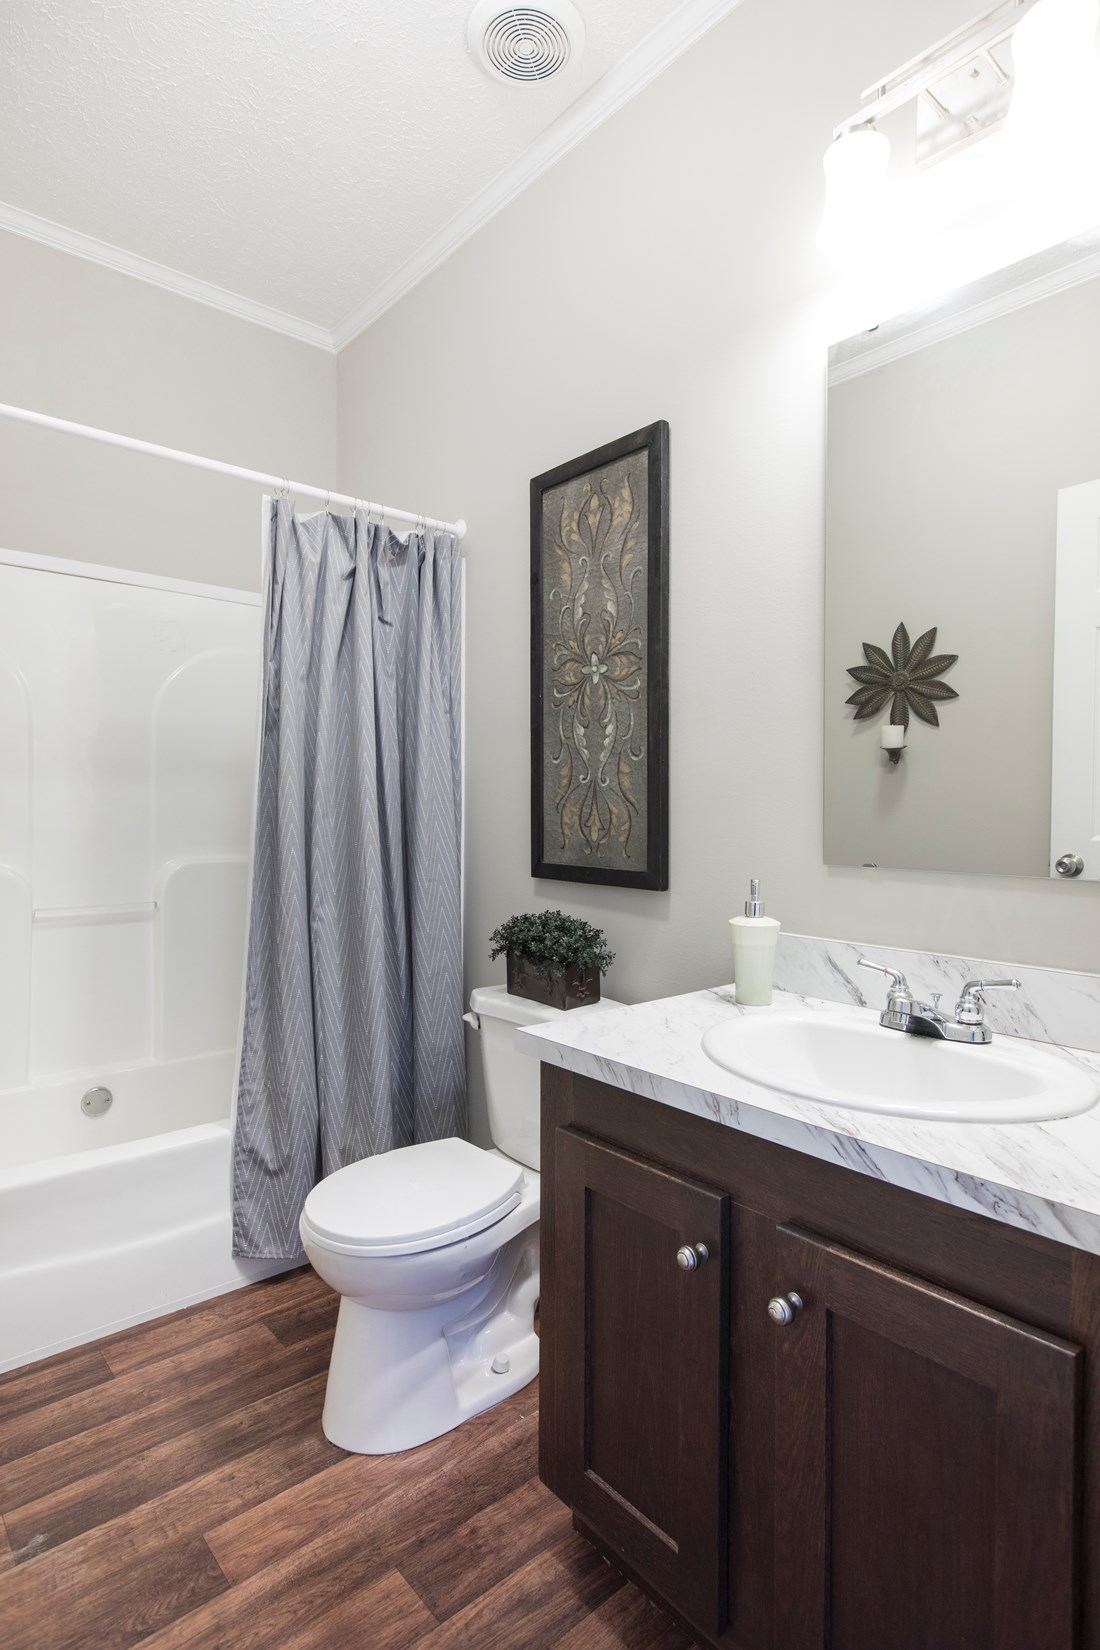 The 5582 SWEET CAROLINE Guest Bathroom. This Manufactured Mobile Home features 4 bedrooms and 2 baths.